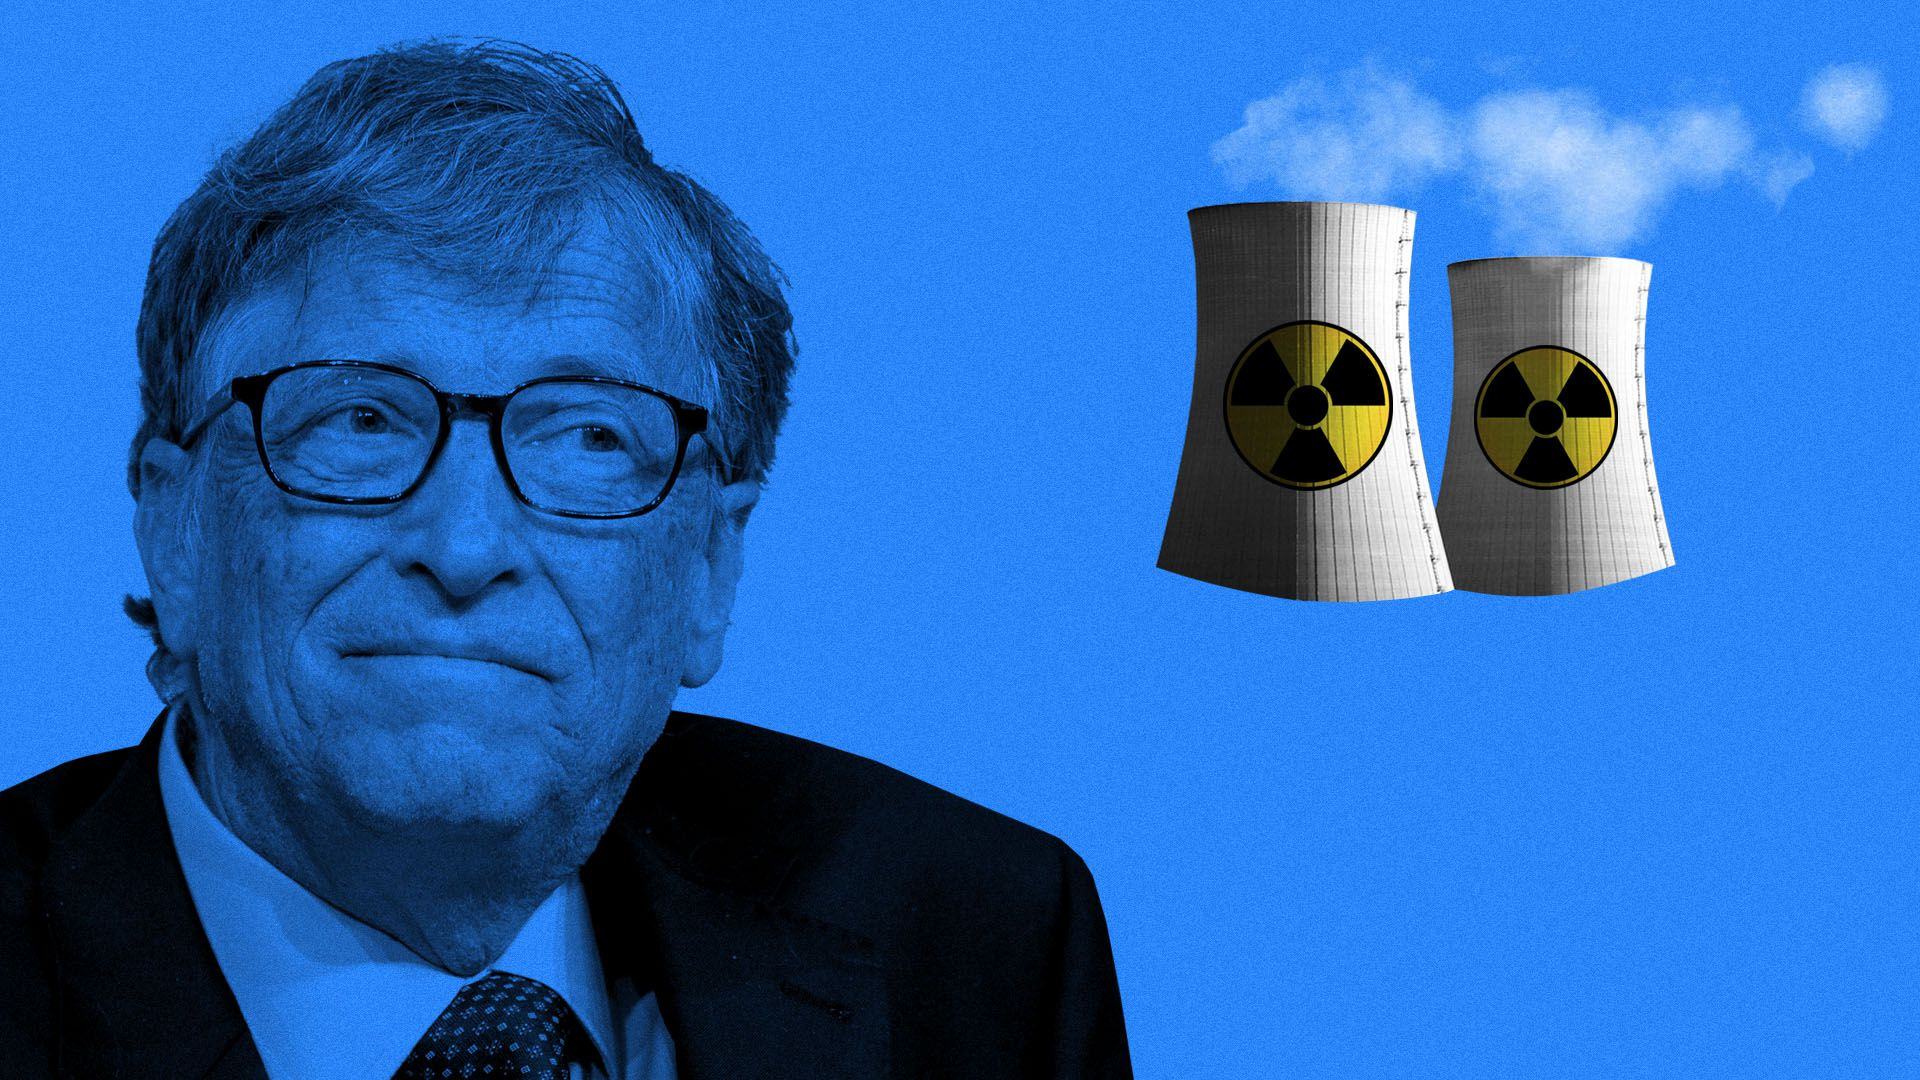 Illustration of Bill Gates considering a small nuclear reactor